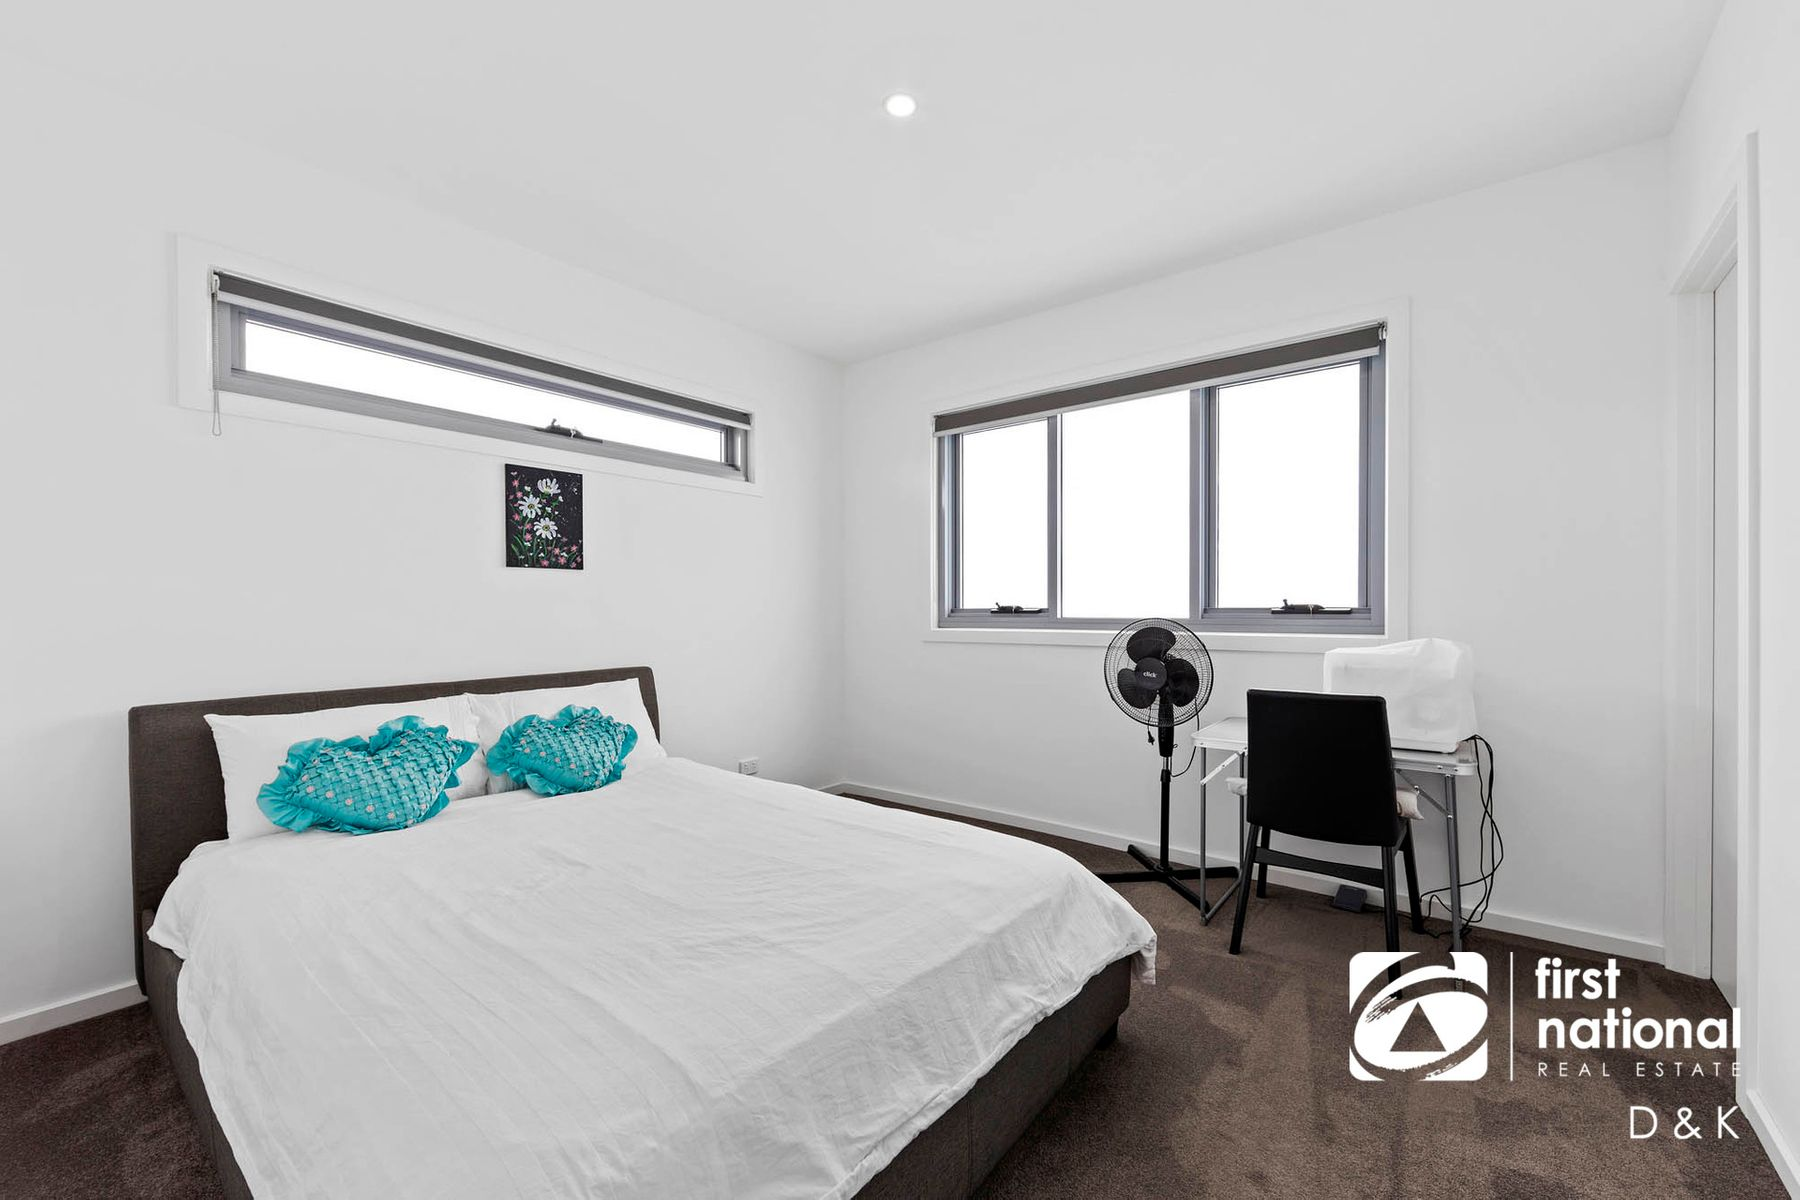 2/232 Francis Street, Yarraville, VIC 3013